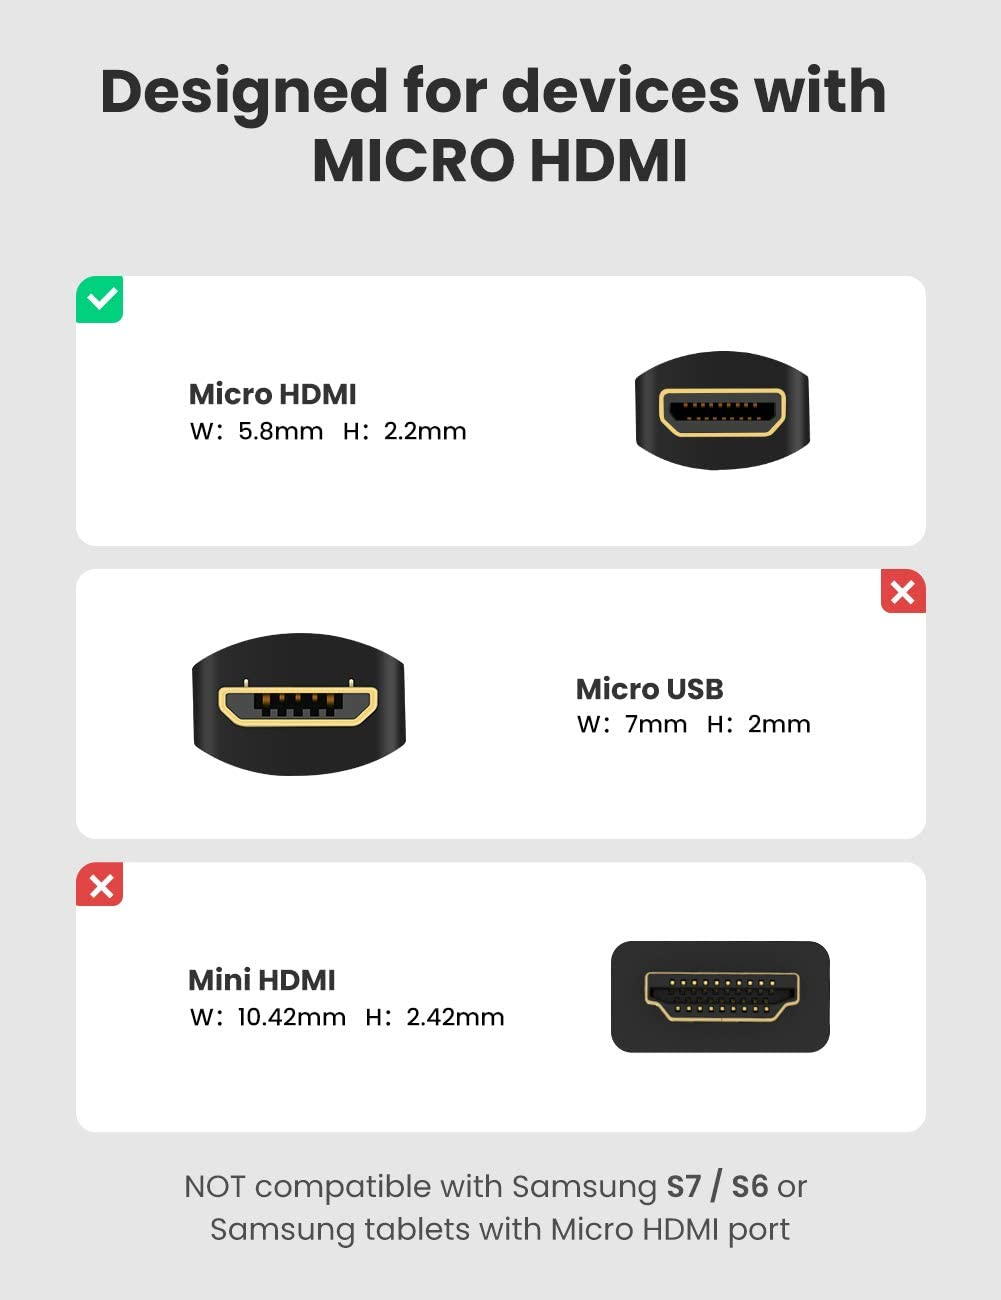 UGREEN Micro HDMI to HDMI Cable Male to Female with Ethernet Type D to Type A Gold Plated Support 1080P 3D 4K Compatible with GoPro Hero 7 Black 5 4 6 Raspberry Pi 4 Nikon B500 Sony A6000 Camera